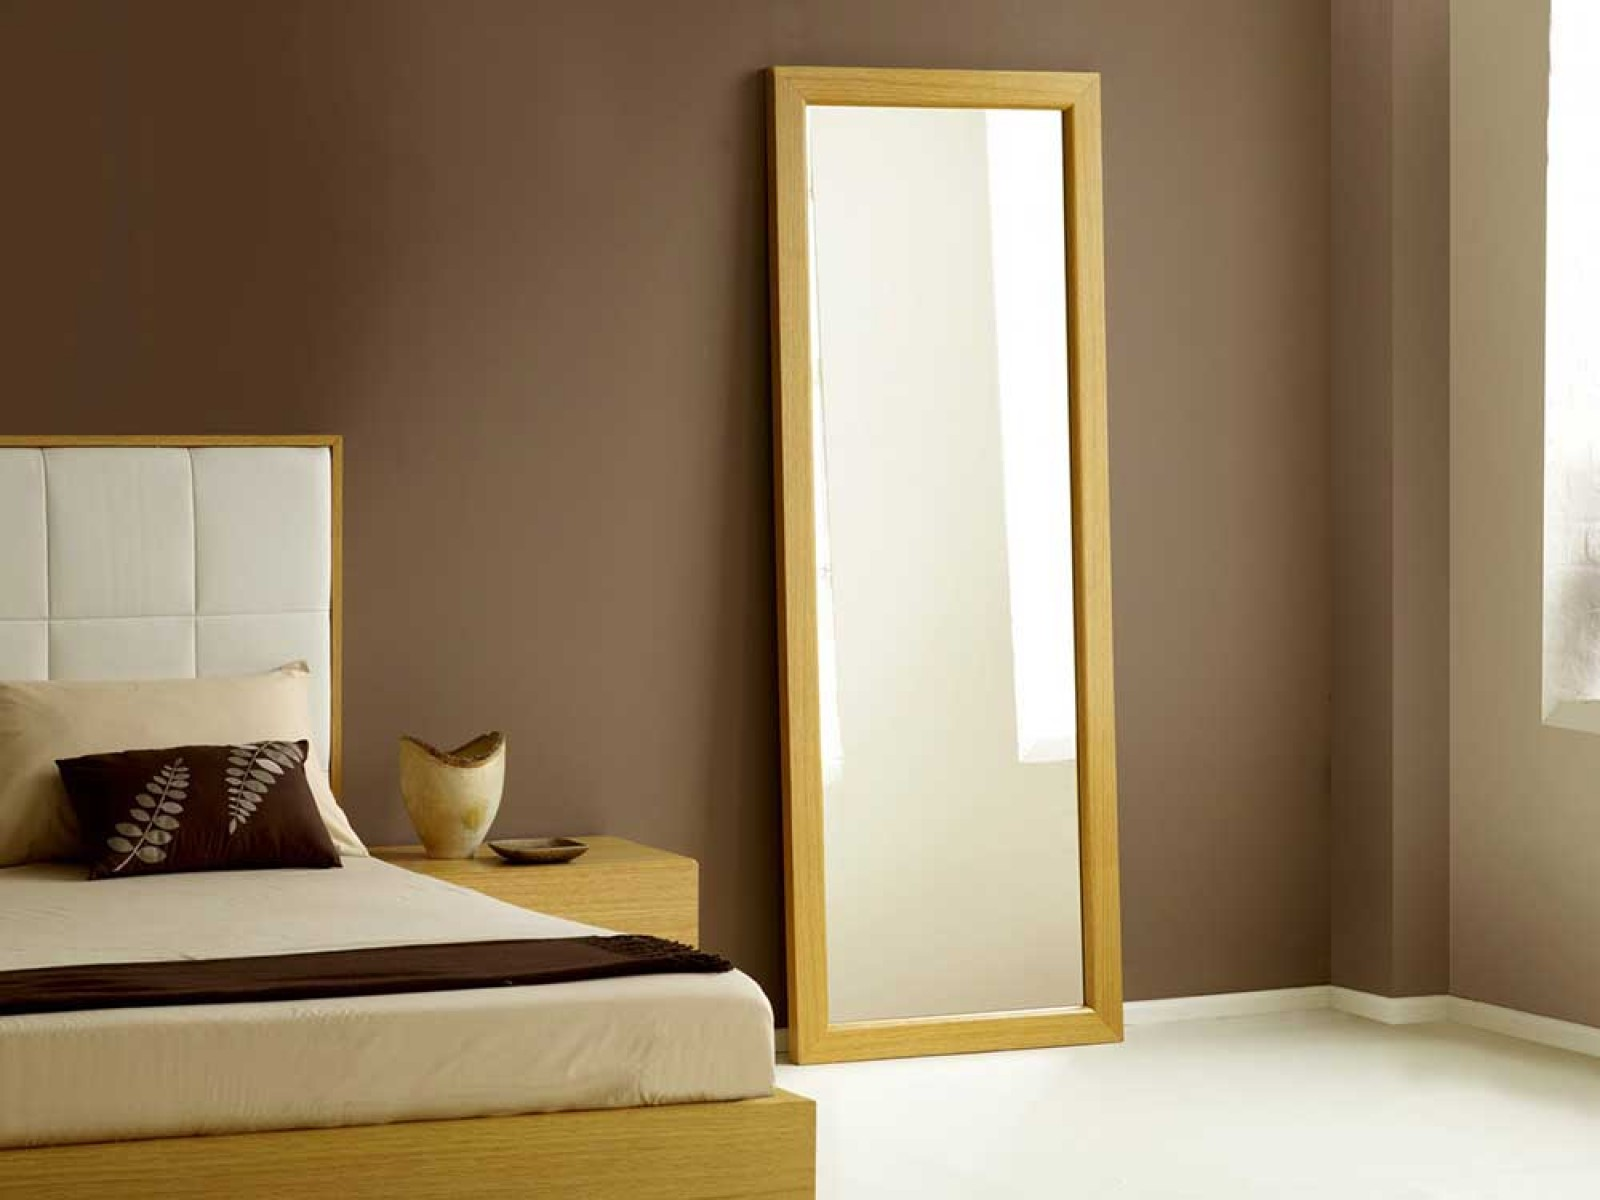 Captivating floor length mirrors ornate ornament mirror frame can be place at your beautiful bedroom Ideas